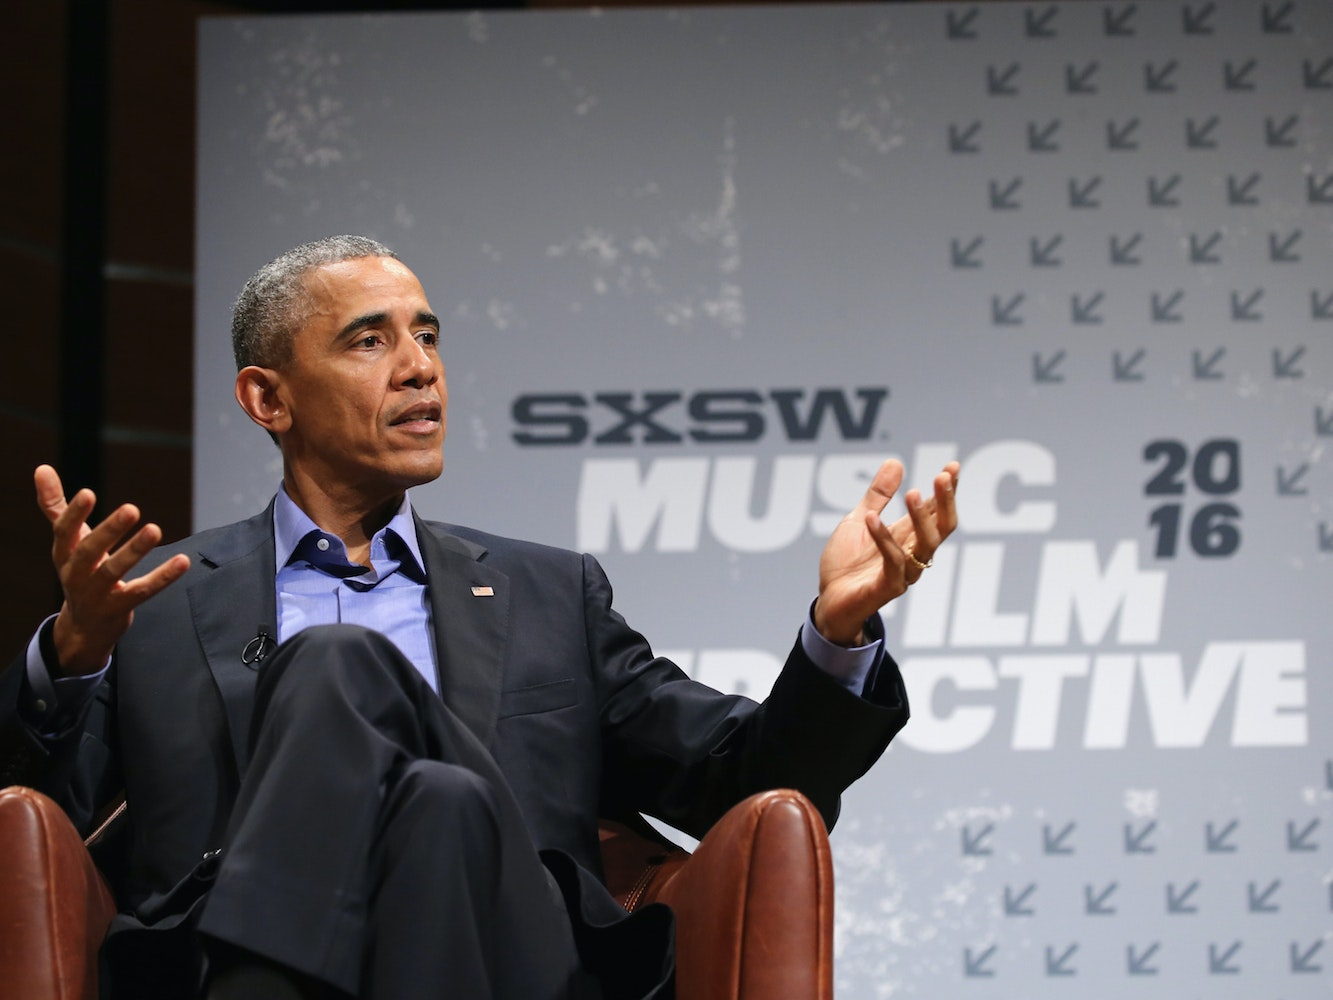 """Obama at SXSW Says """"You Cannot Take an Absolutist View"""" on Encryption Debate"""